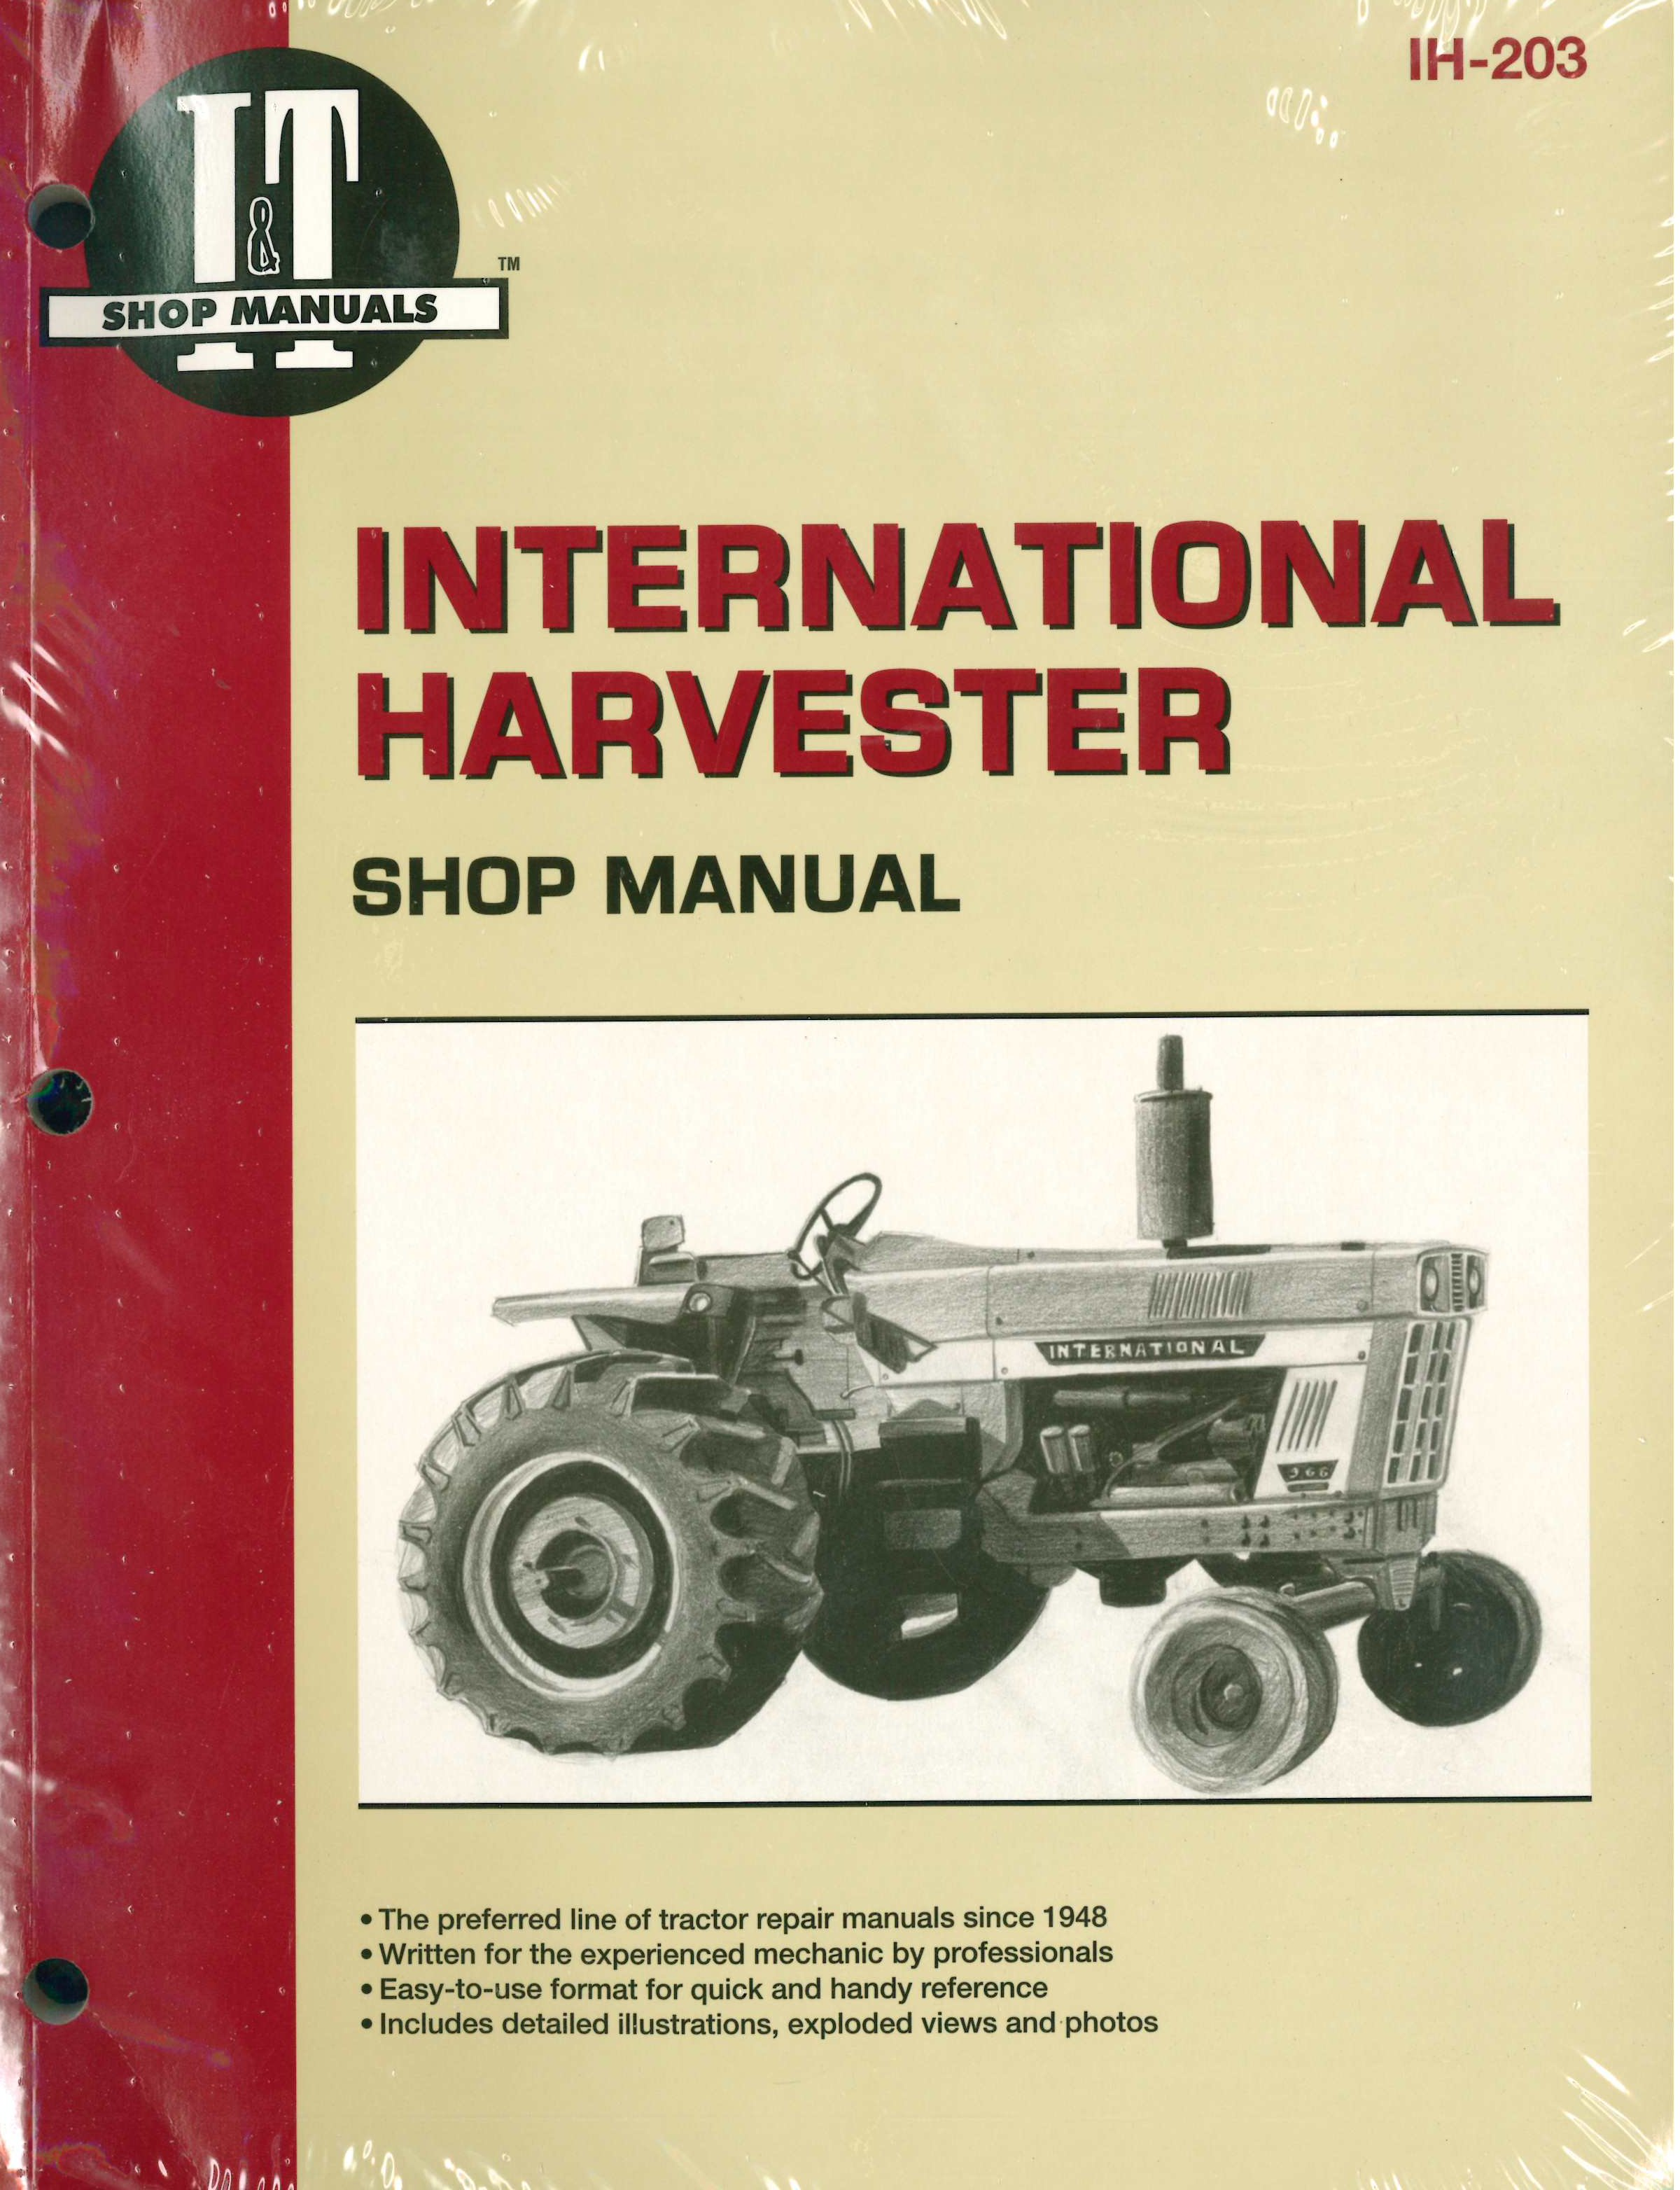 International 966 Wiring Diagram Complete Diagrams 1977 Scout Harvester Tractor Service Manual 454 464 484 574 584 Rh Repairmanual Com 1972 Truck